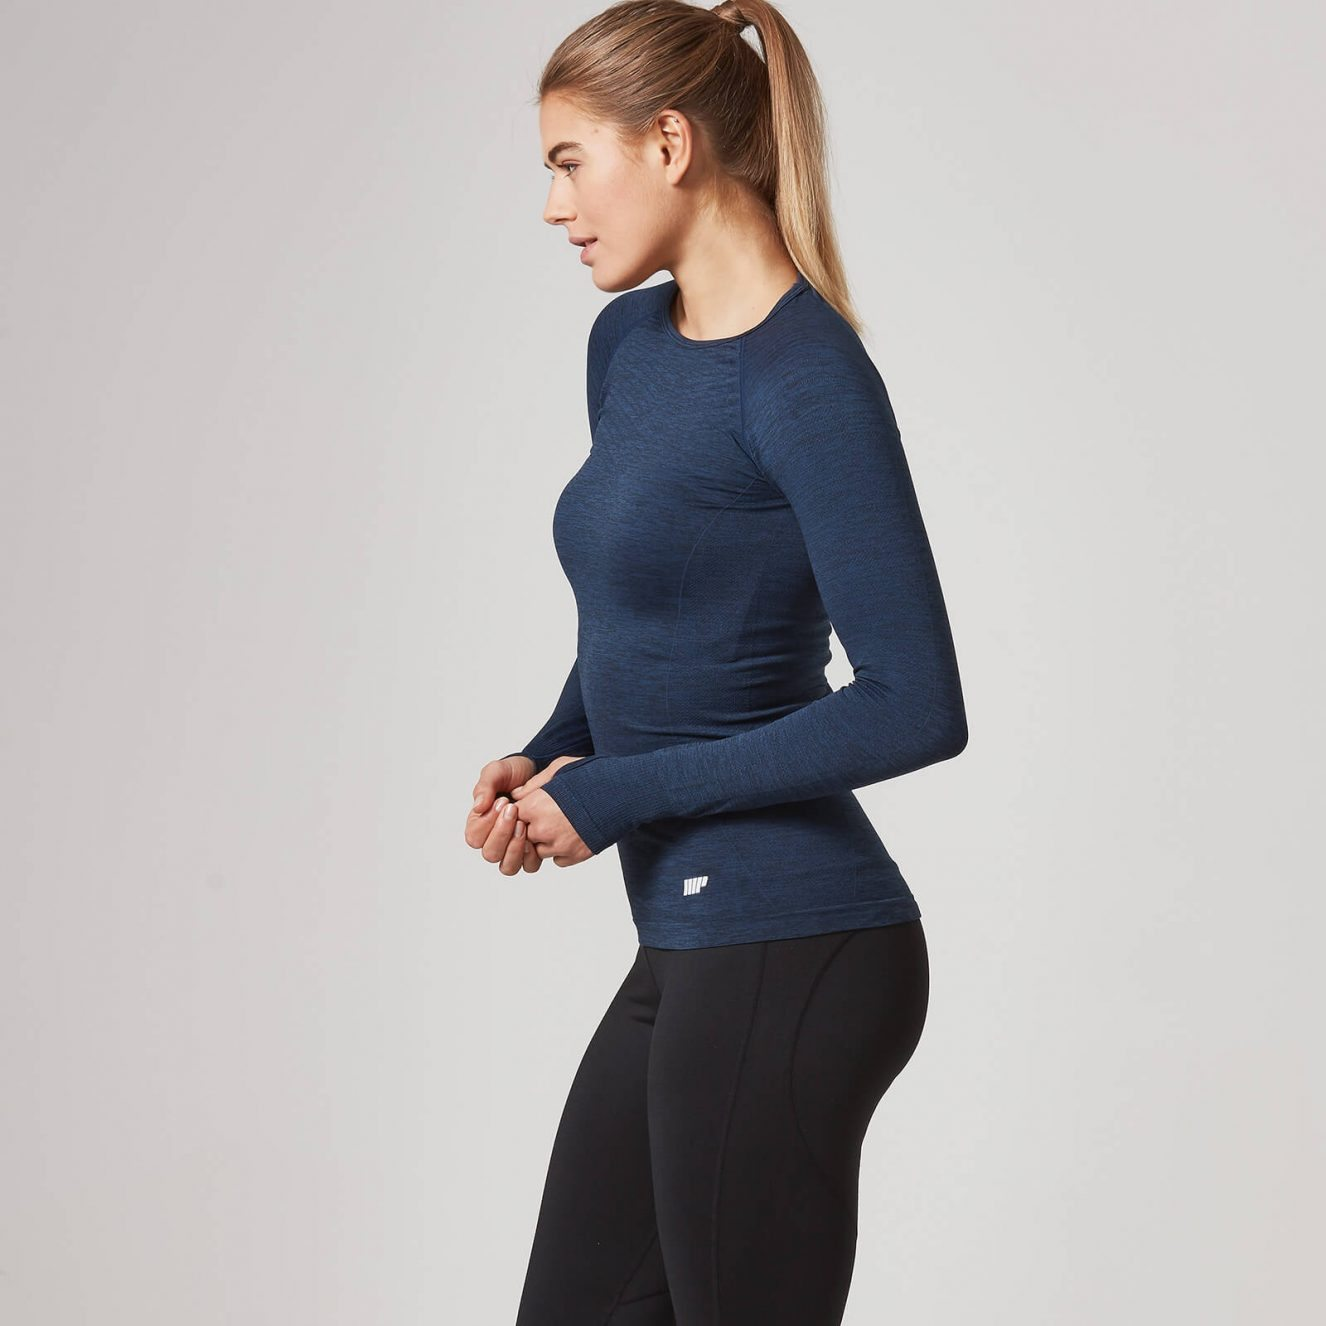 myprotein seamless long sleeved top, by healthista.com